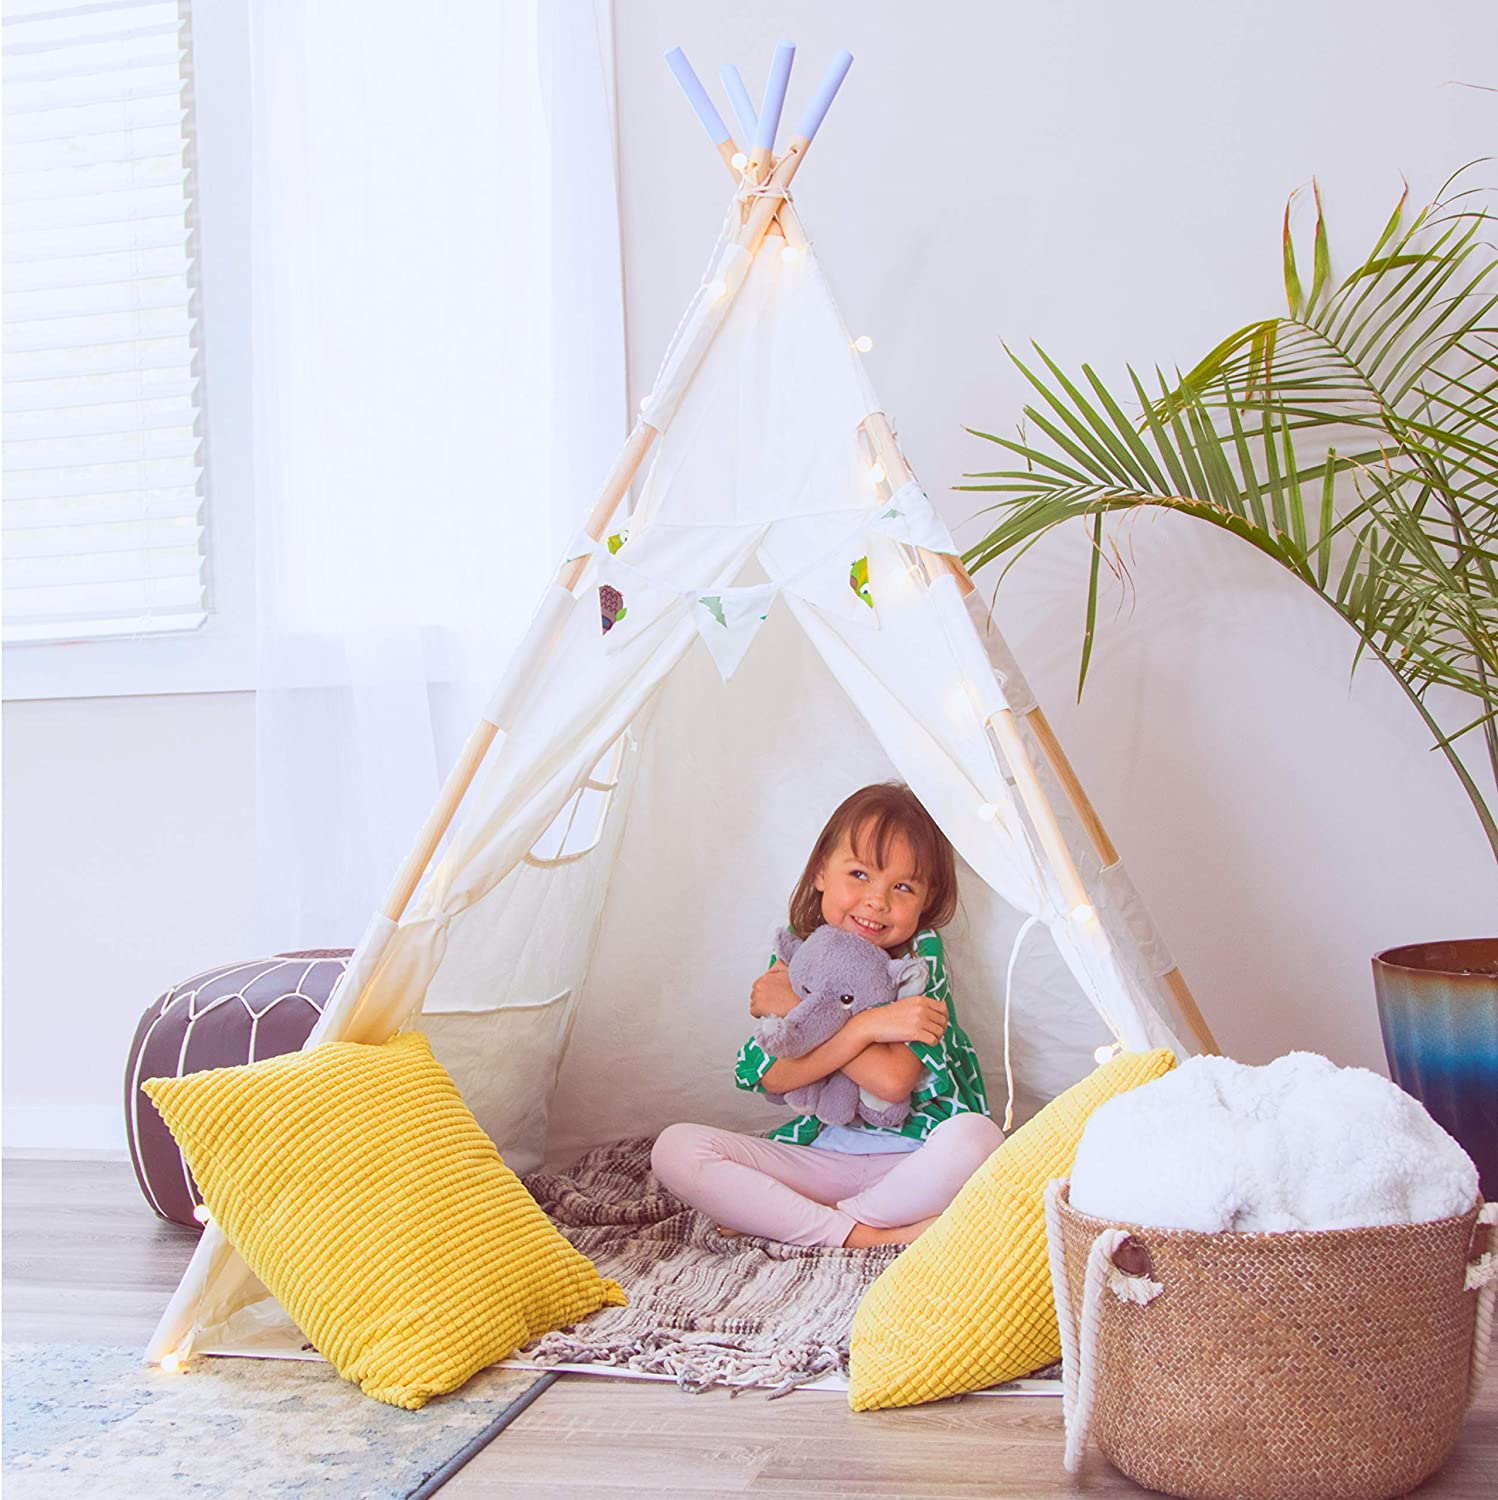 Indoor White Kid Canvas Tepee Playhouse Hill and Gully Teepee Tent for Kids: Extra Large for Baby Teepee Children Play Camping Tee Pee Fort with Lights and Decorations Toddler Teepee Boys Girls